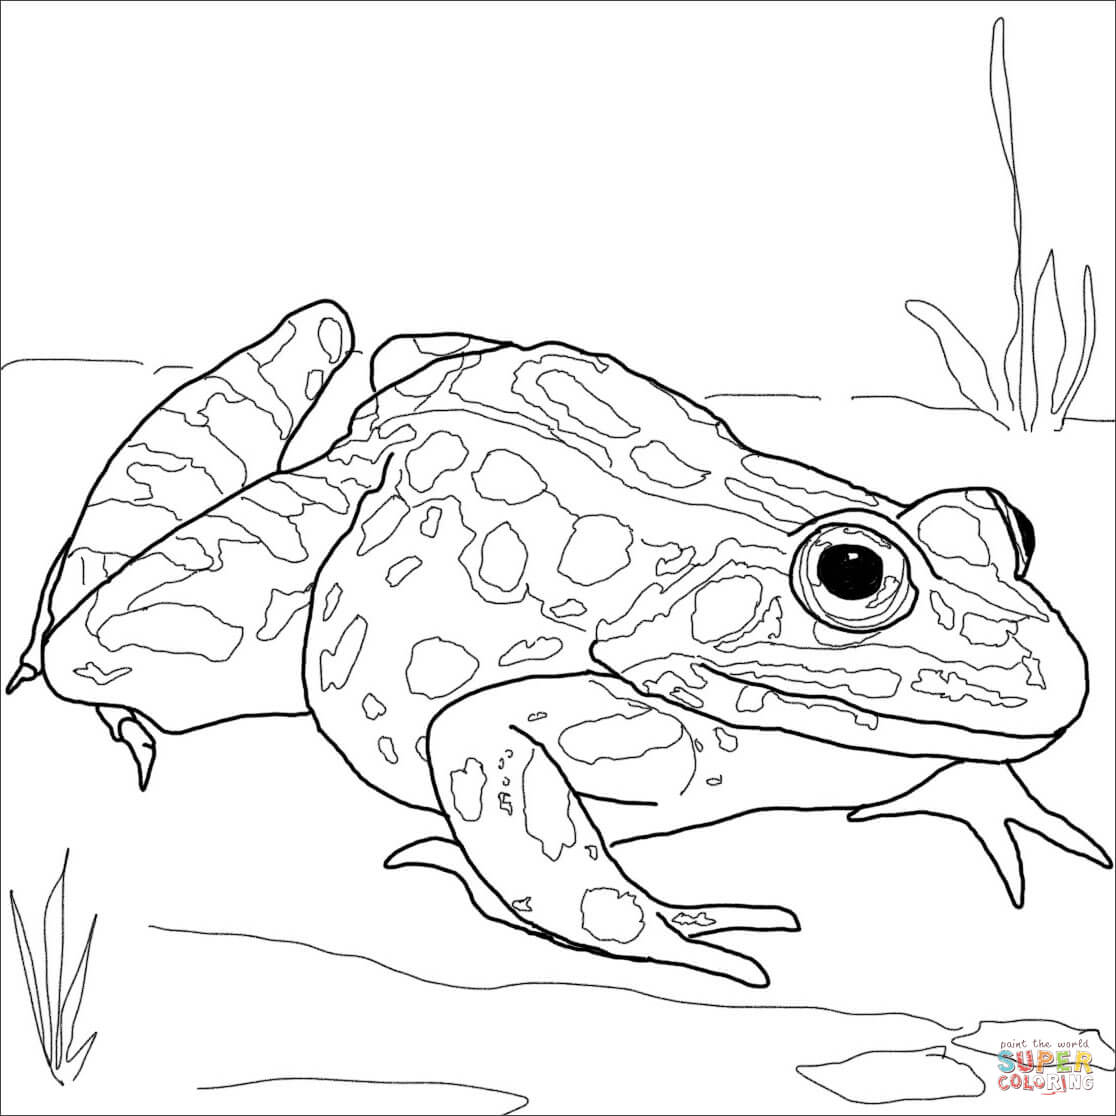 Rainforest Poison Dart Frog Coloring Page Coloring Pages